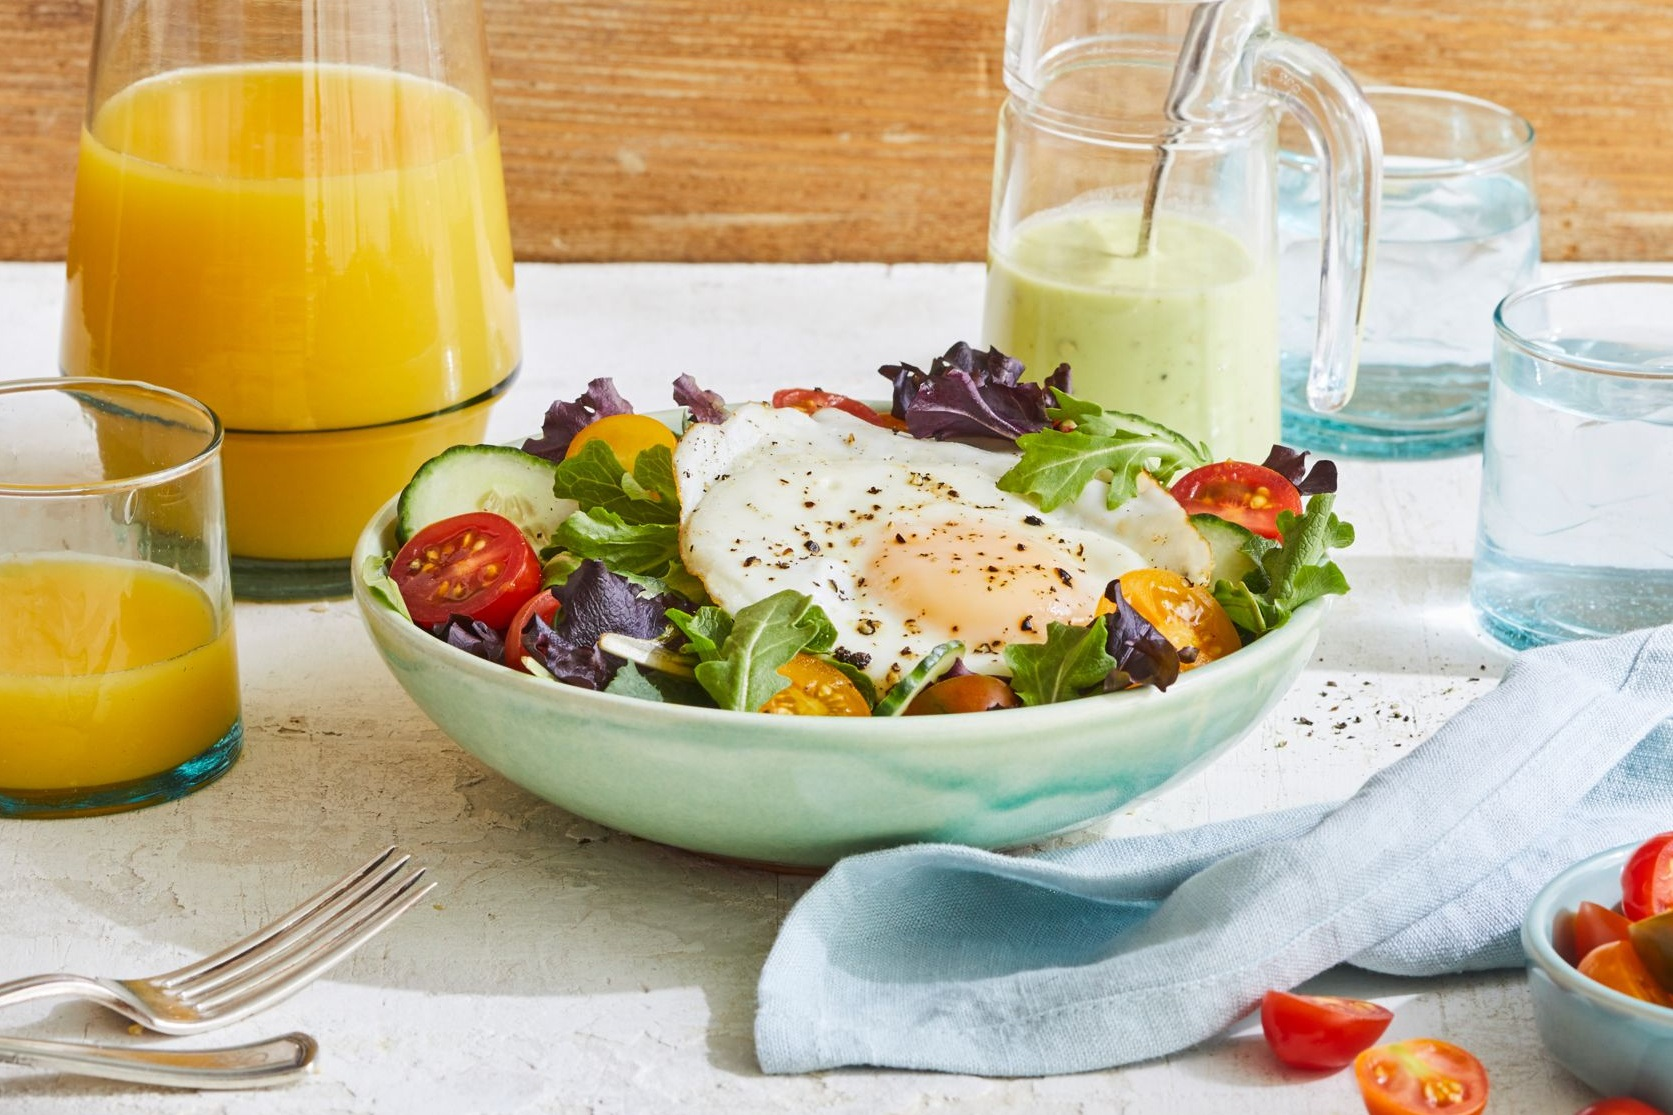 breakfast bowl with bacon and eggs over salad greens and tomatoes with avocado yogurt dressing